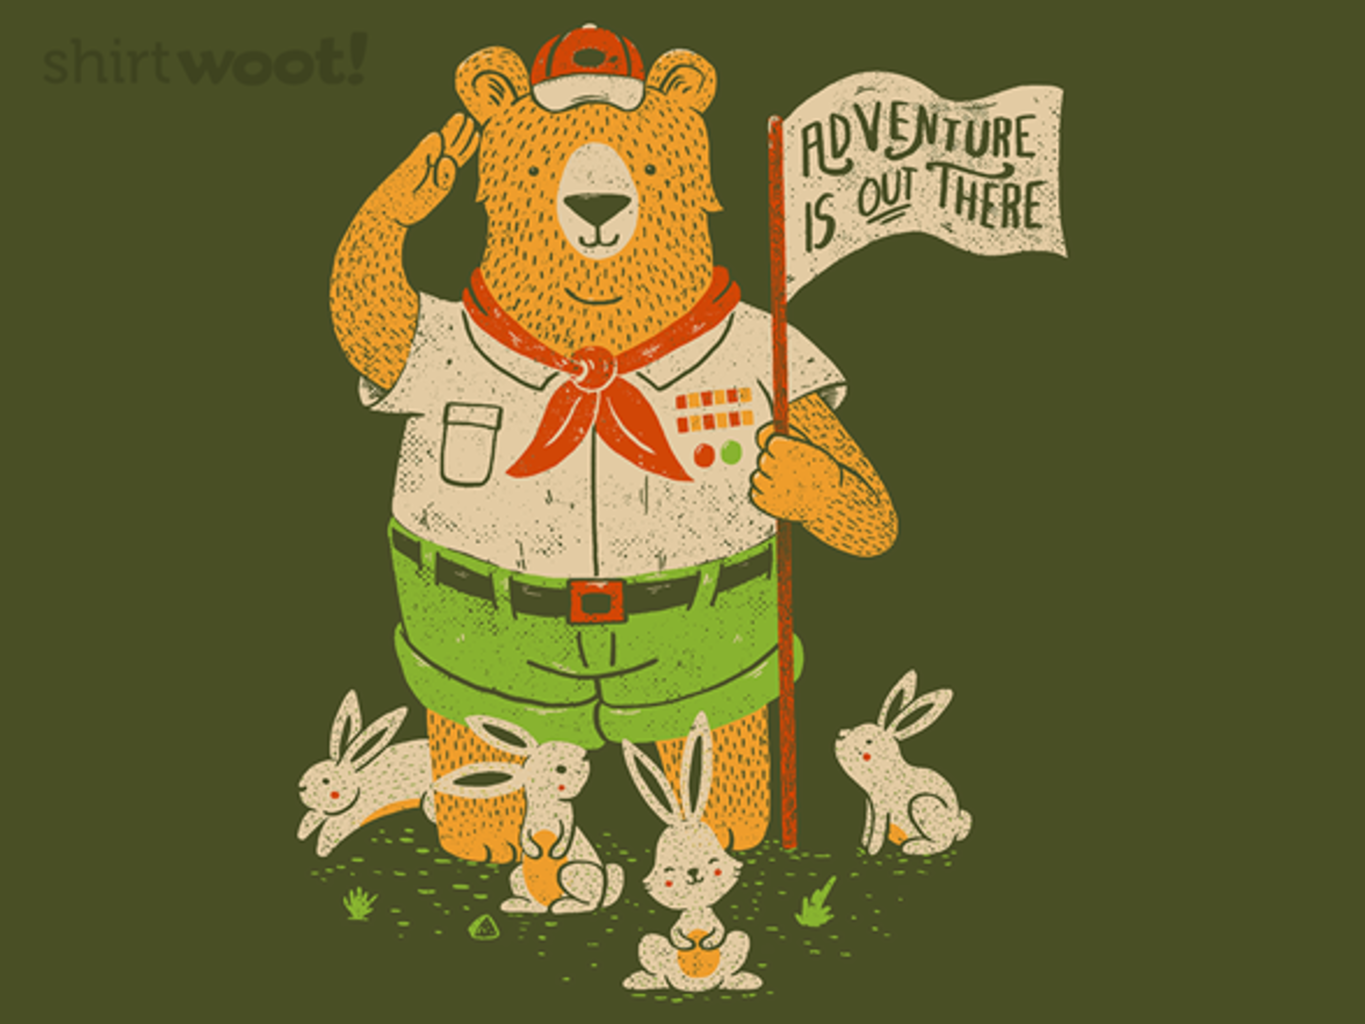 Woot!: Adventure Is Out There